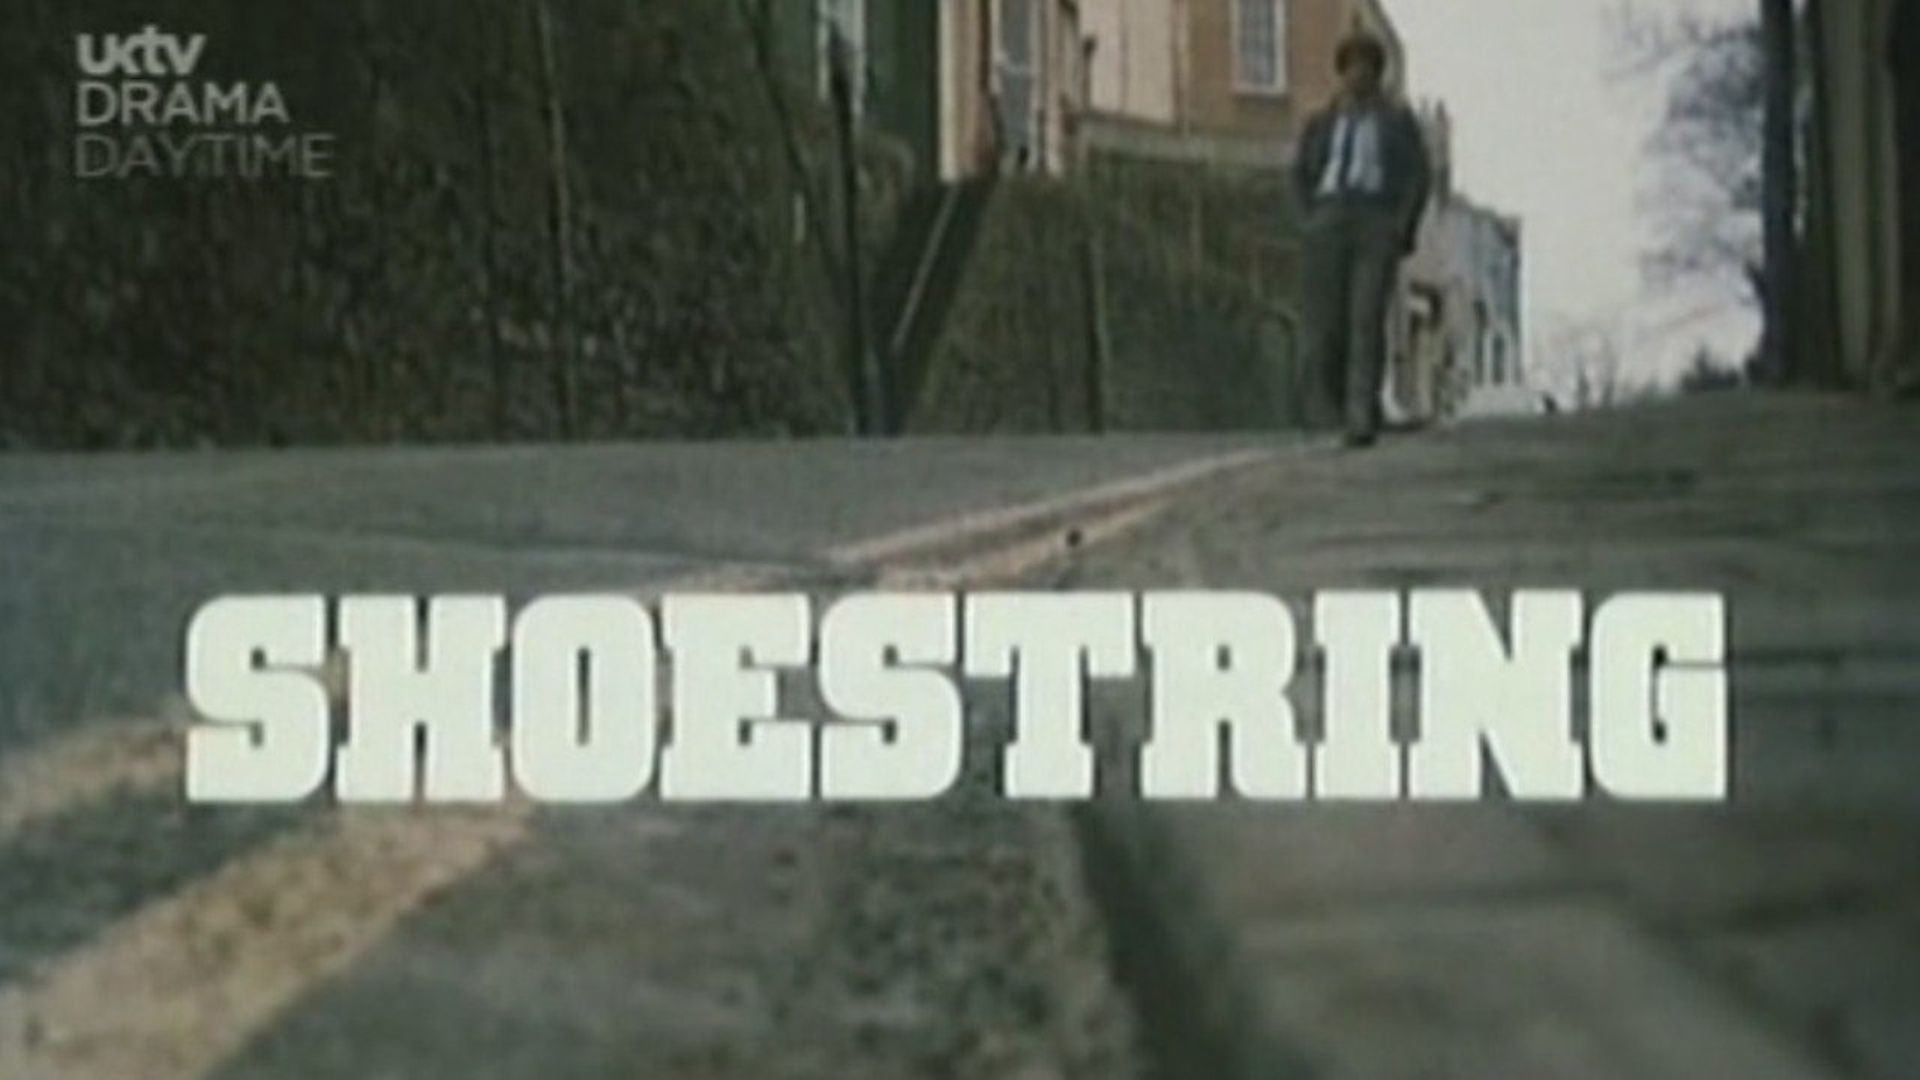 Shoestring - Where to Watch Every Episode Streaming Online